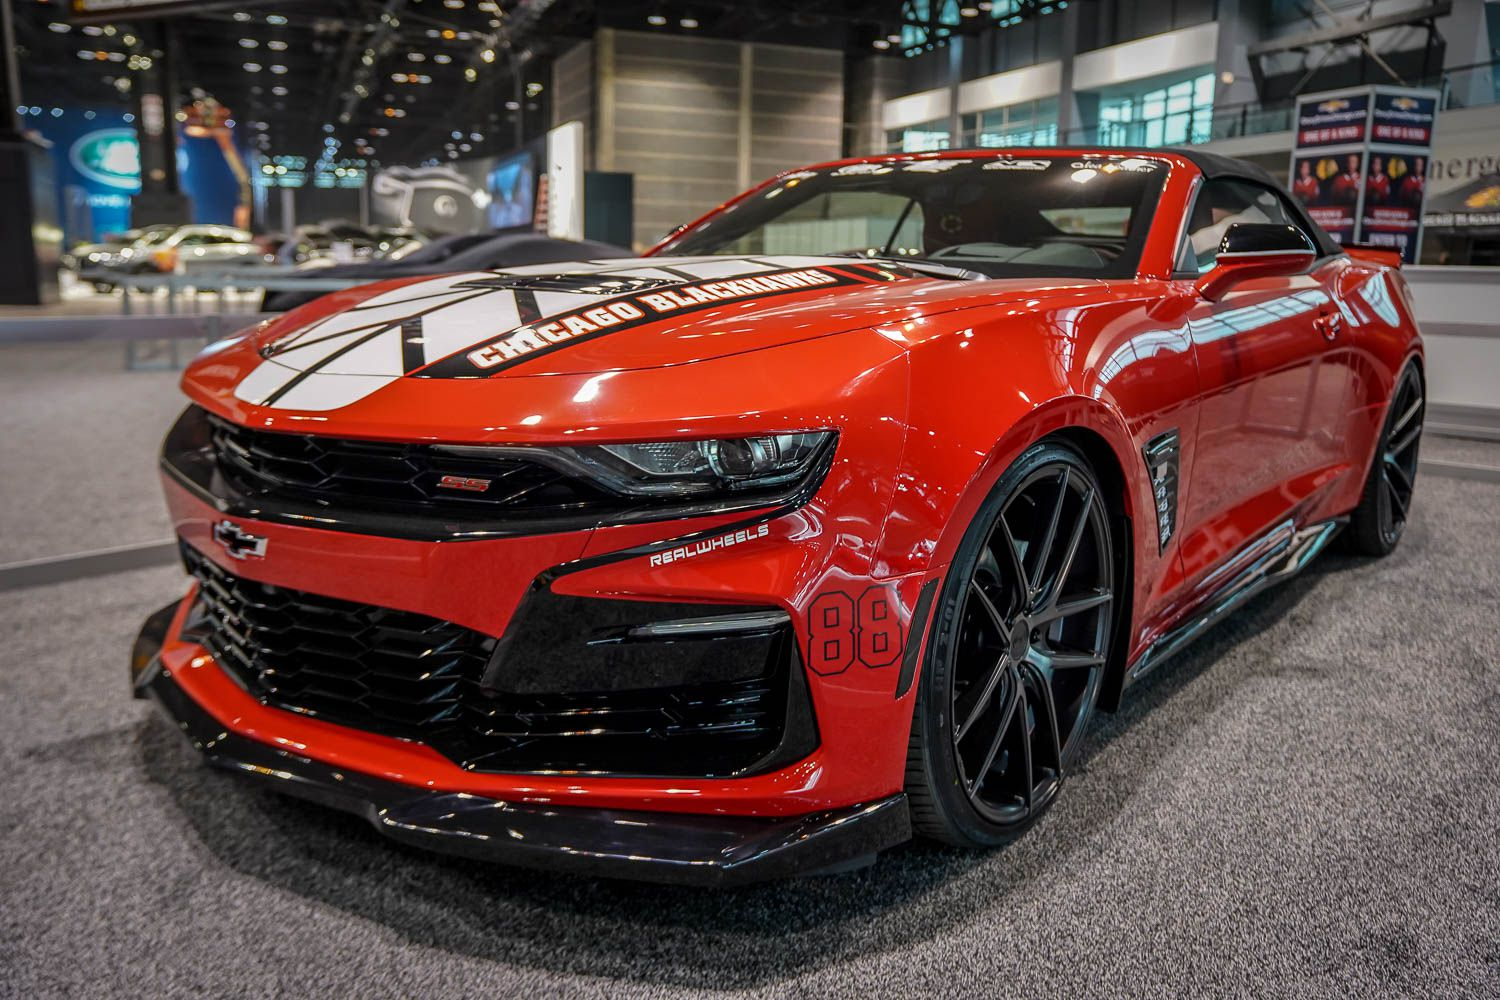 Photo 05: 2019 Chicago Blackhawks Chevrolet Camaro 2SS Convertible